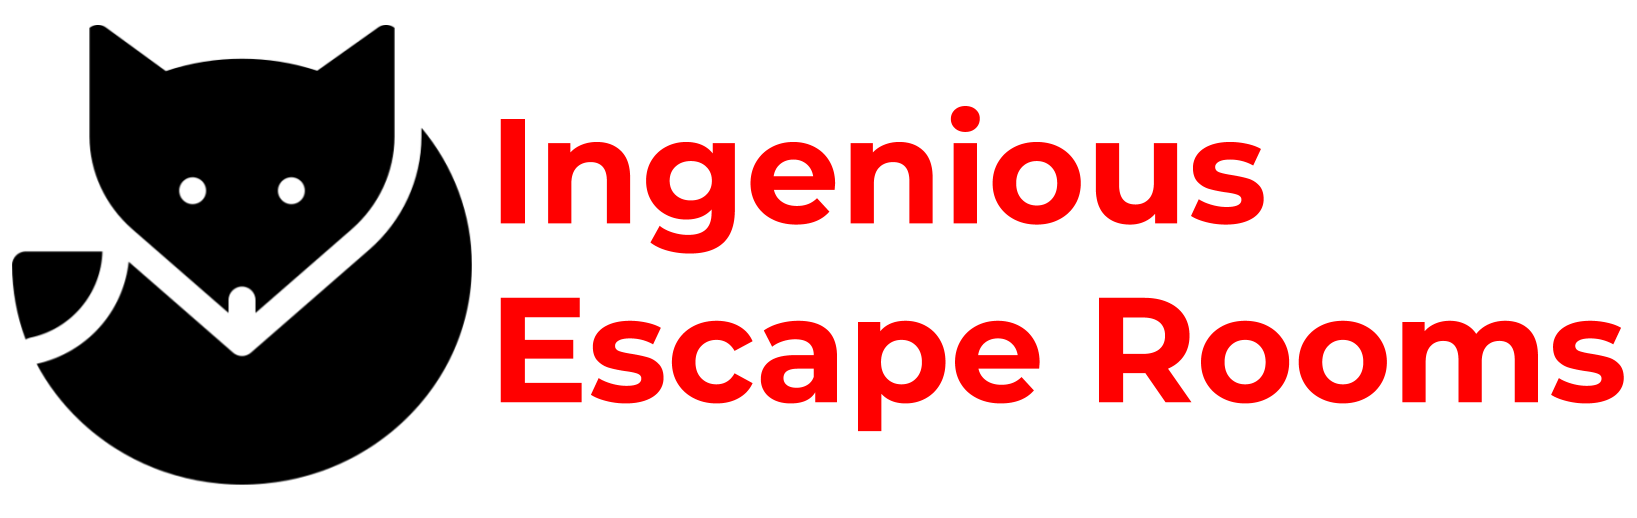 Ingenious Escape Rooms |   Rooms – Grid – 2 cols